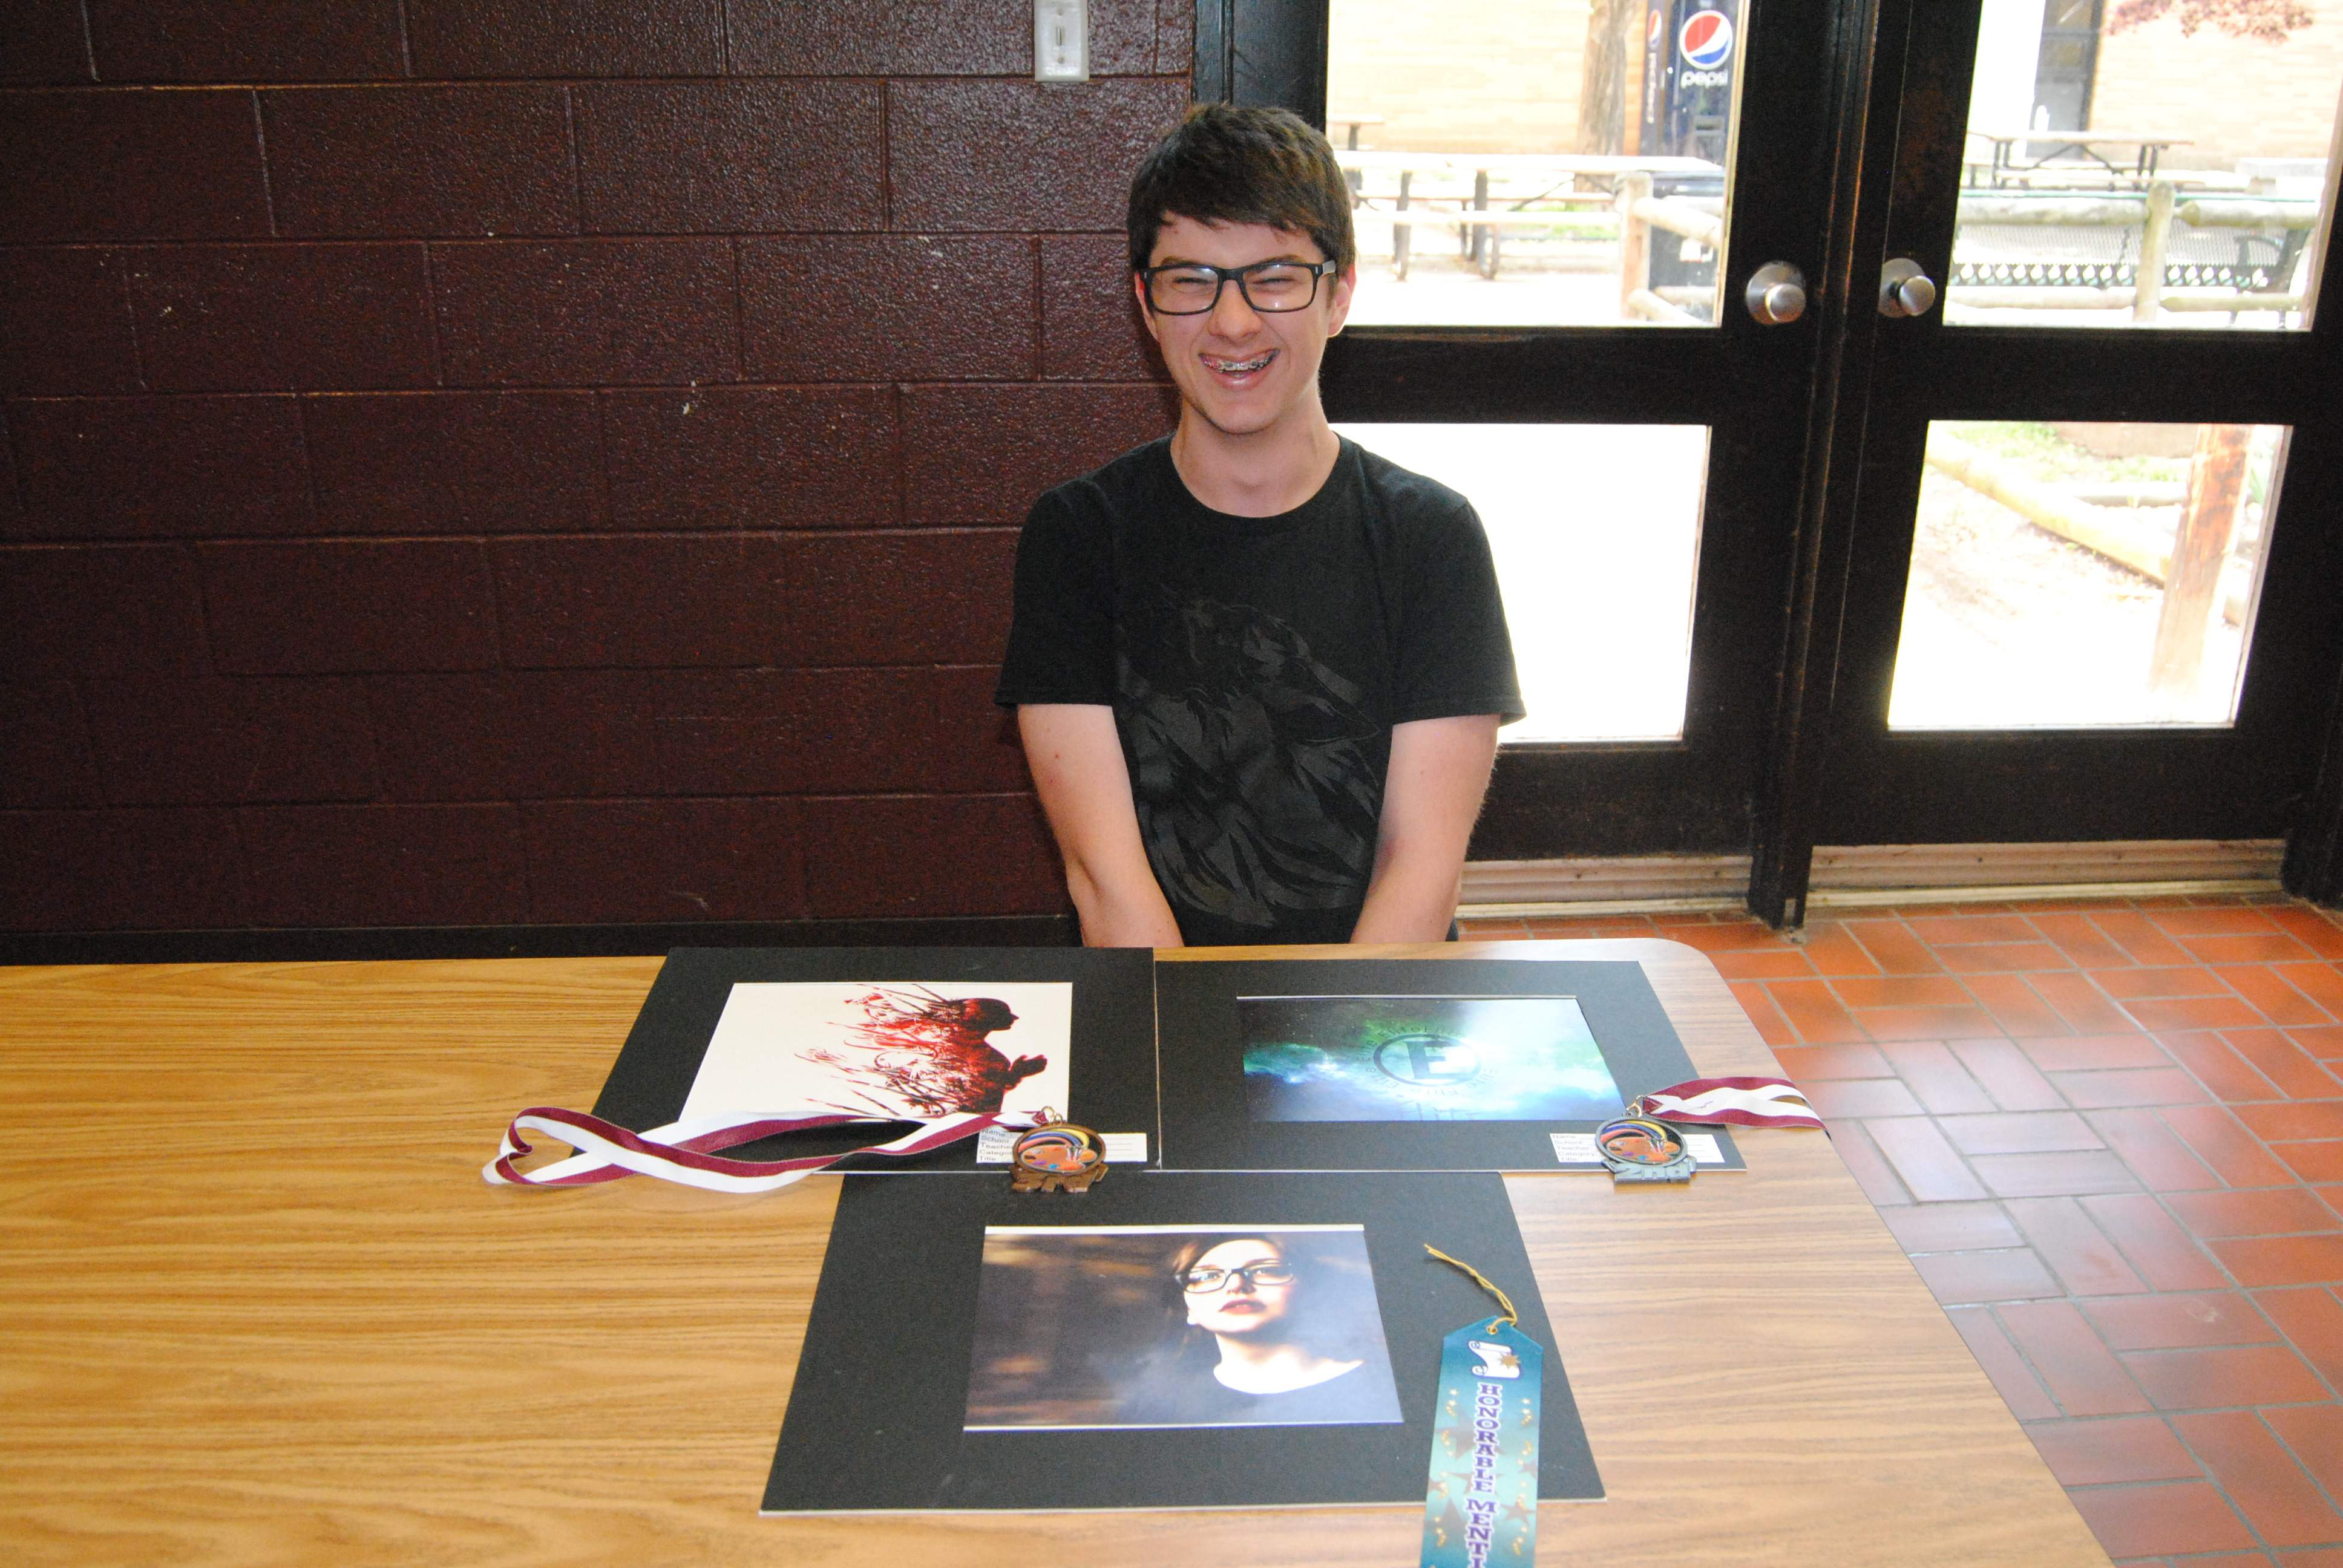 Noah Bishop is happy with his three wins from the Pope County High School art competition. Bishop took second and third places in computer graphics plus an honorable mention in photography.